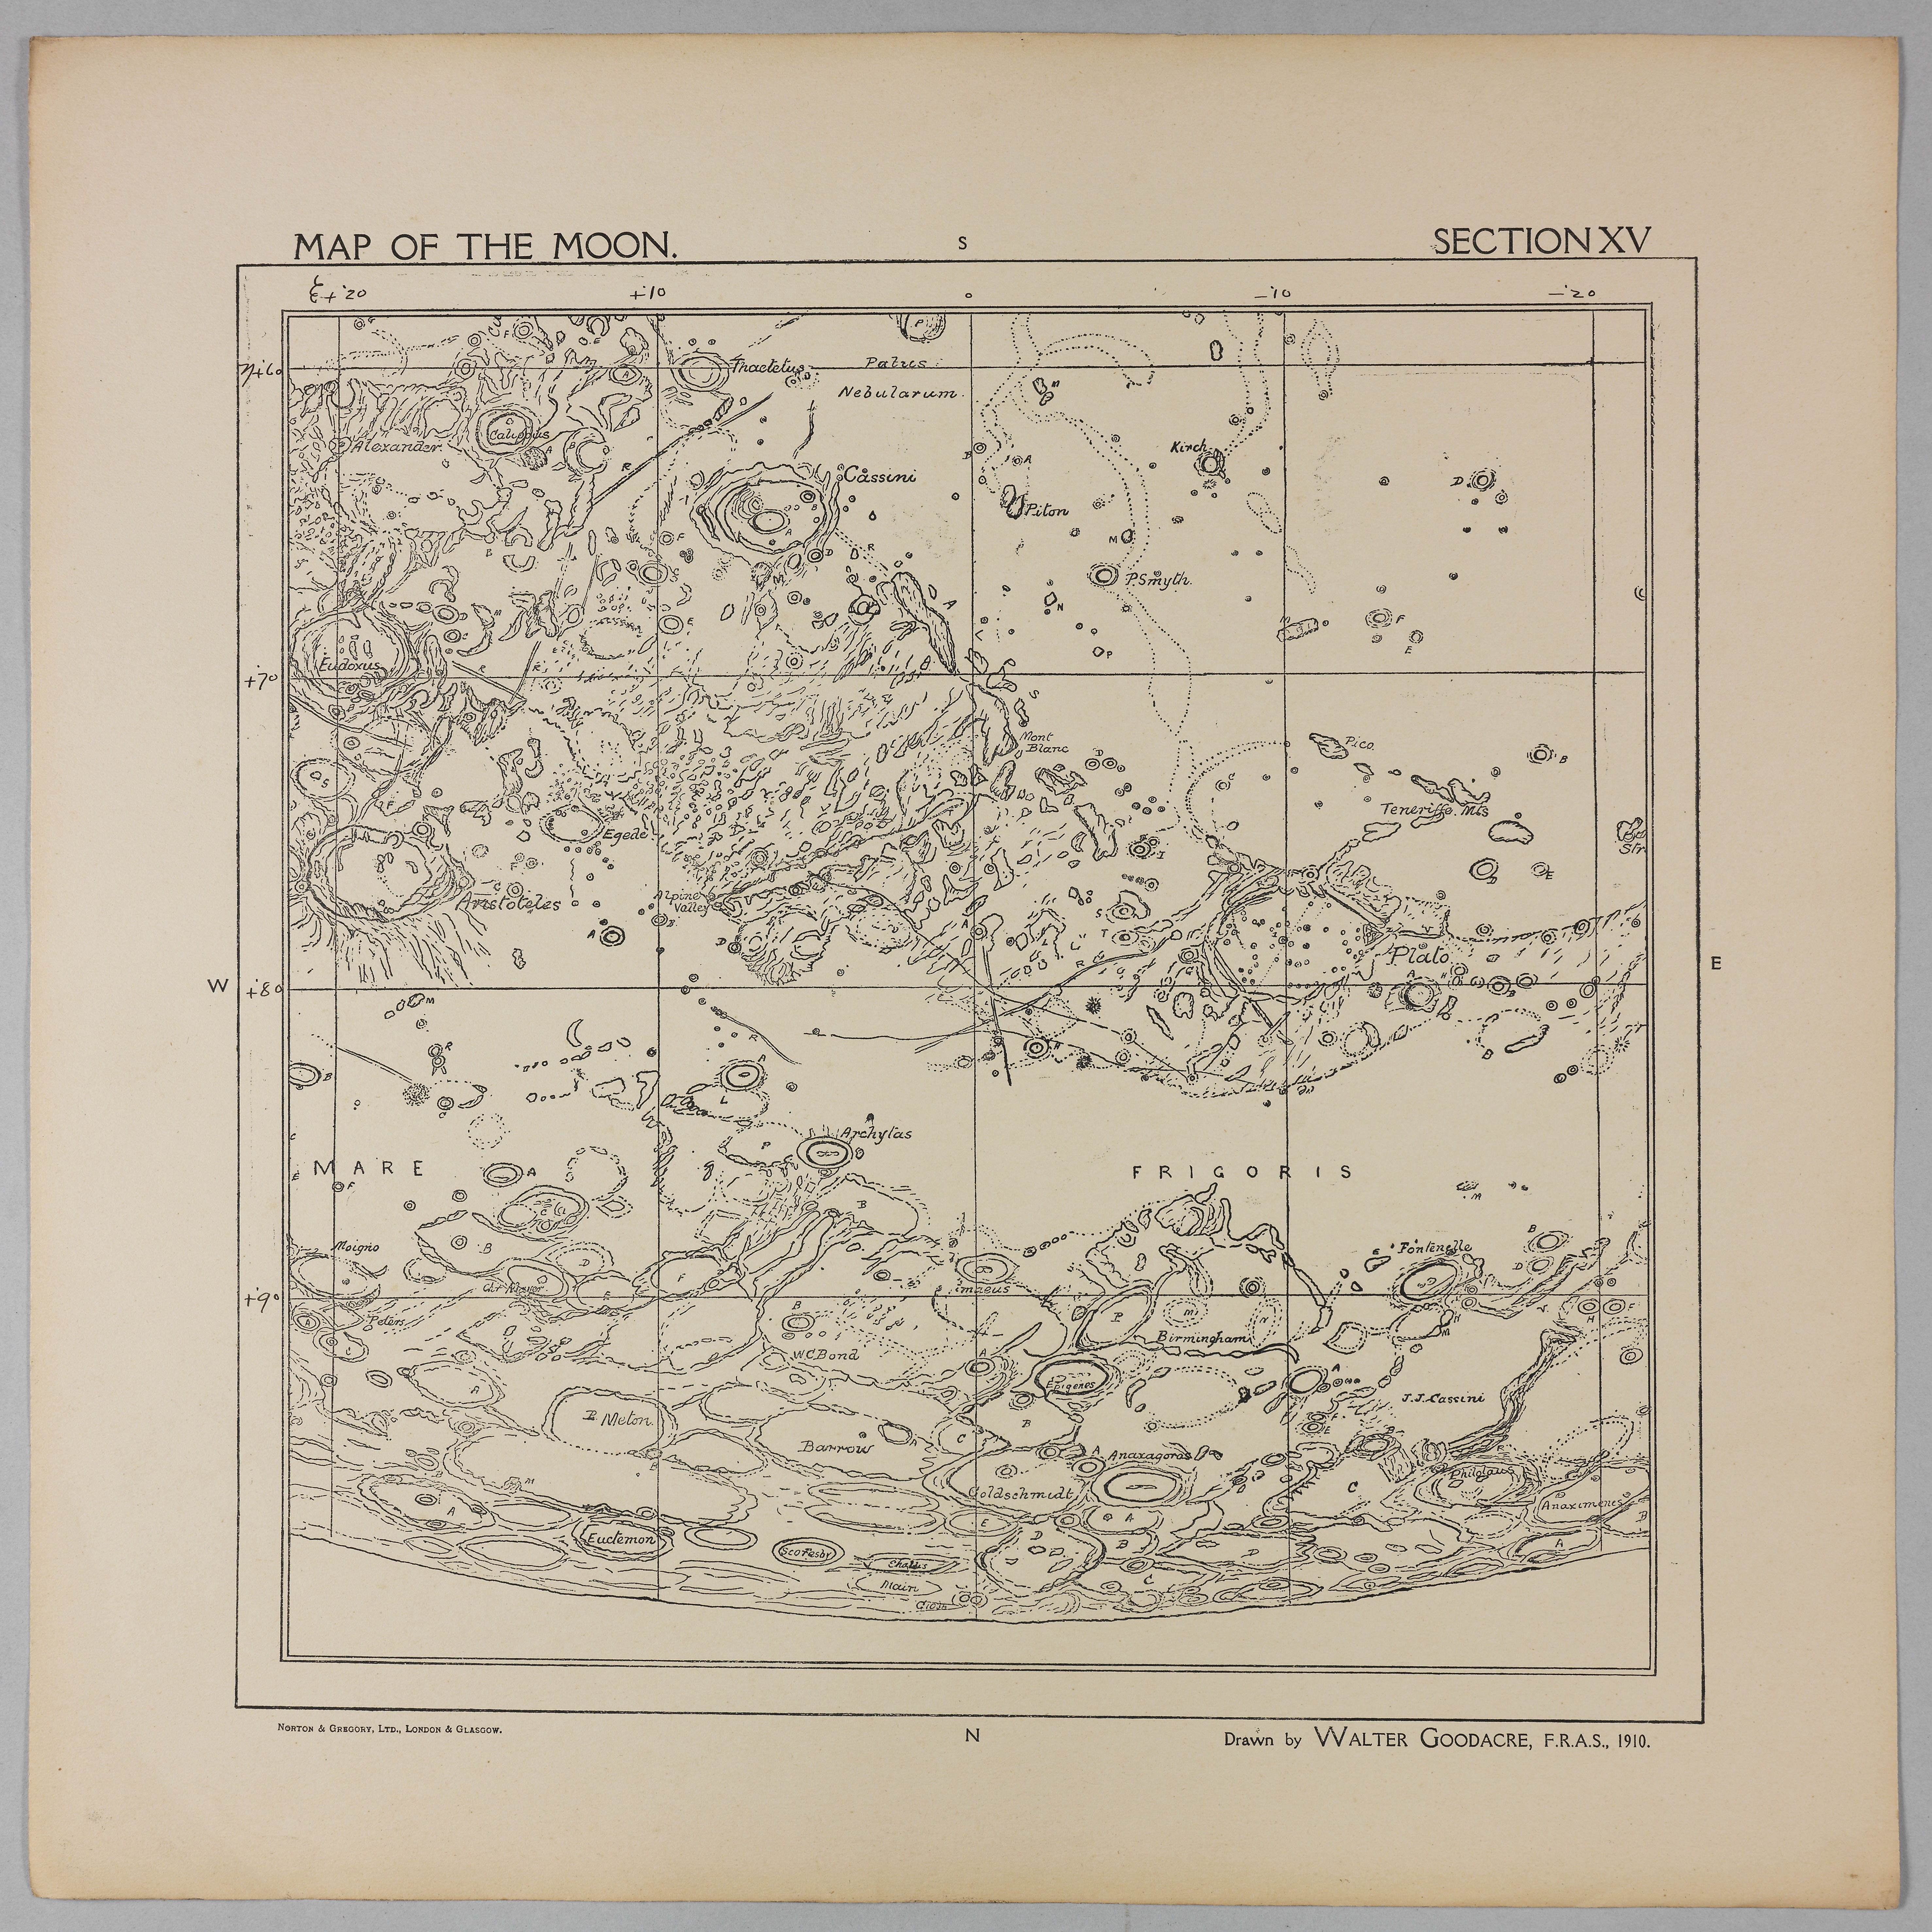 Goodacre's 1910 Map of the Moon: Section 15